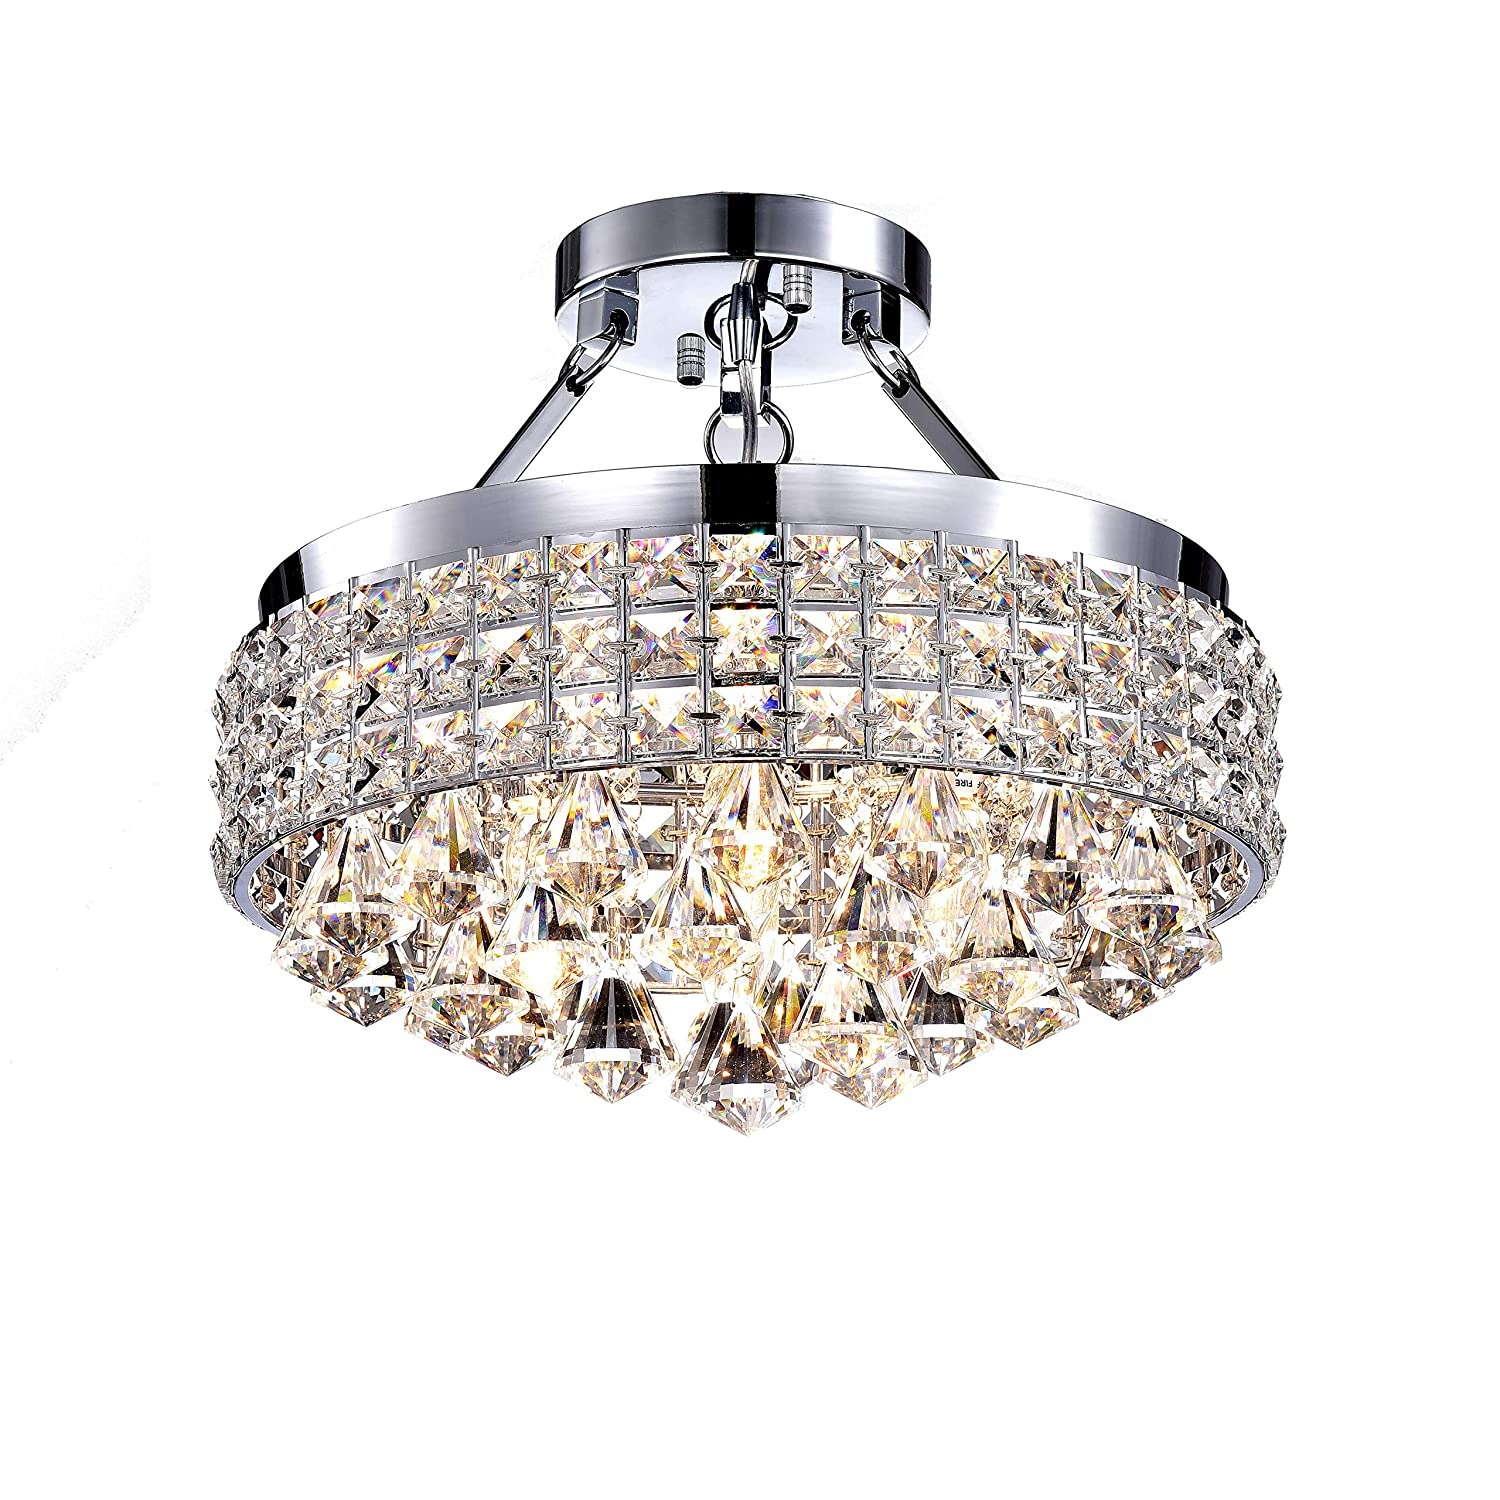 low priced 93054 3a3f3 Antonia 4-Light Crystal Semi-Flush Mount Chandelier with Chrome Iron Shade